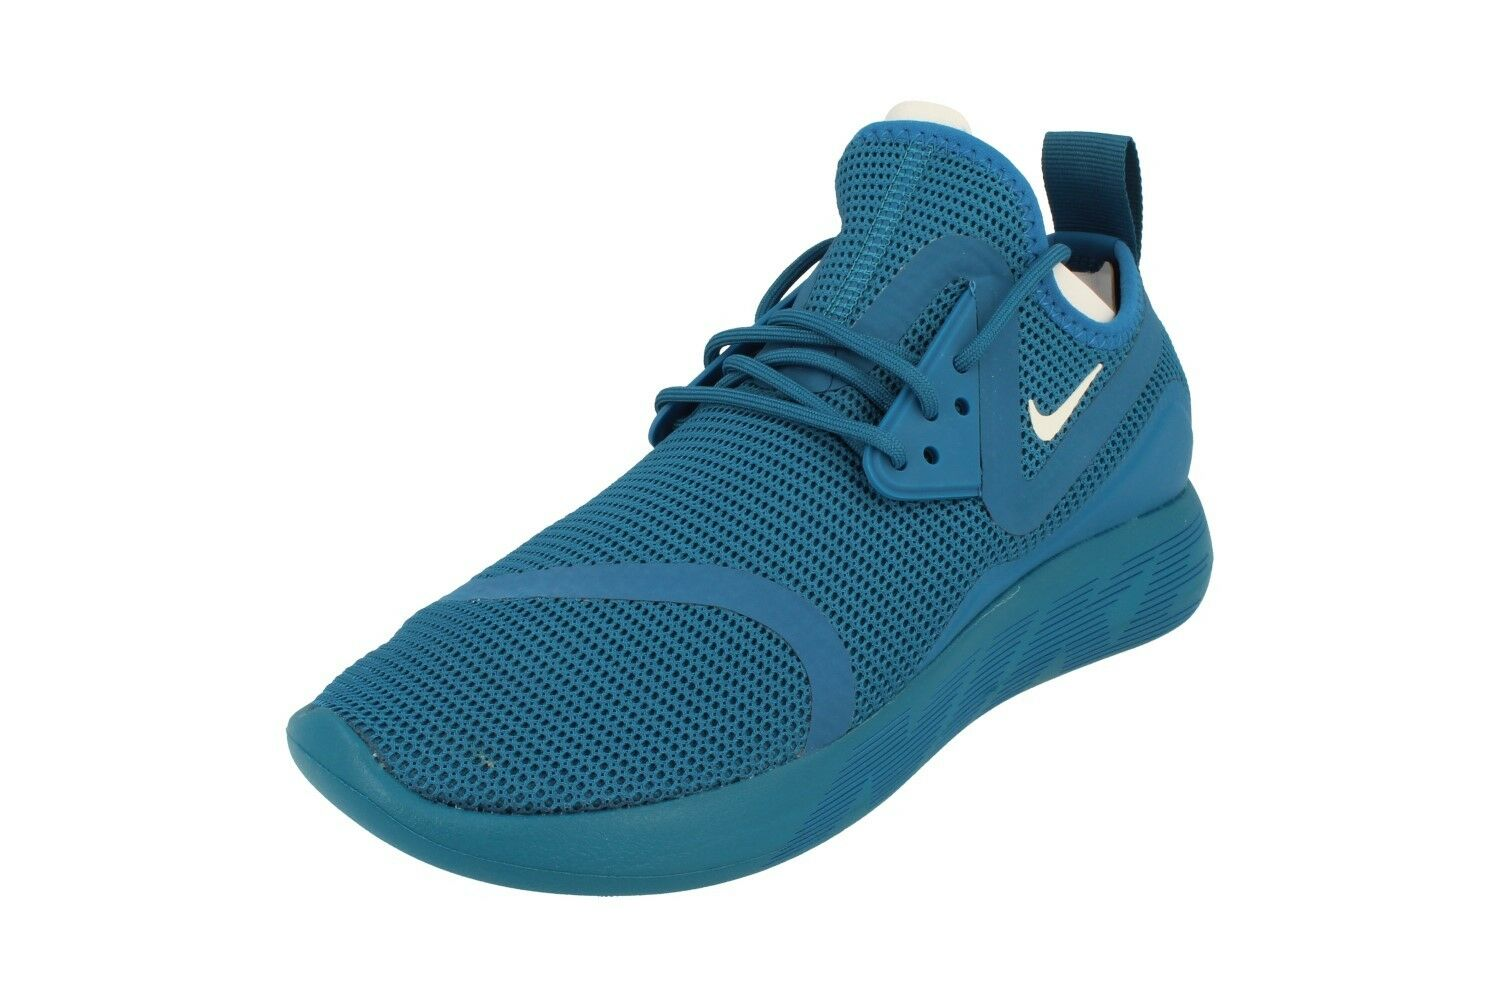 Nike Lunarcharge BR homme fonctionnement Trainers 942059 Sneakers chaussures 400